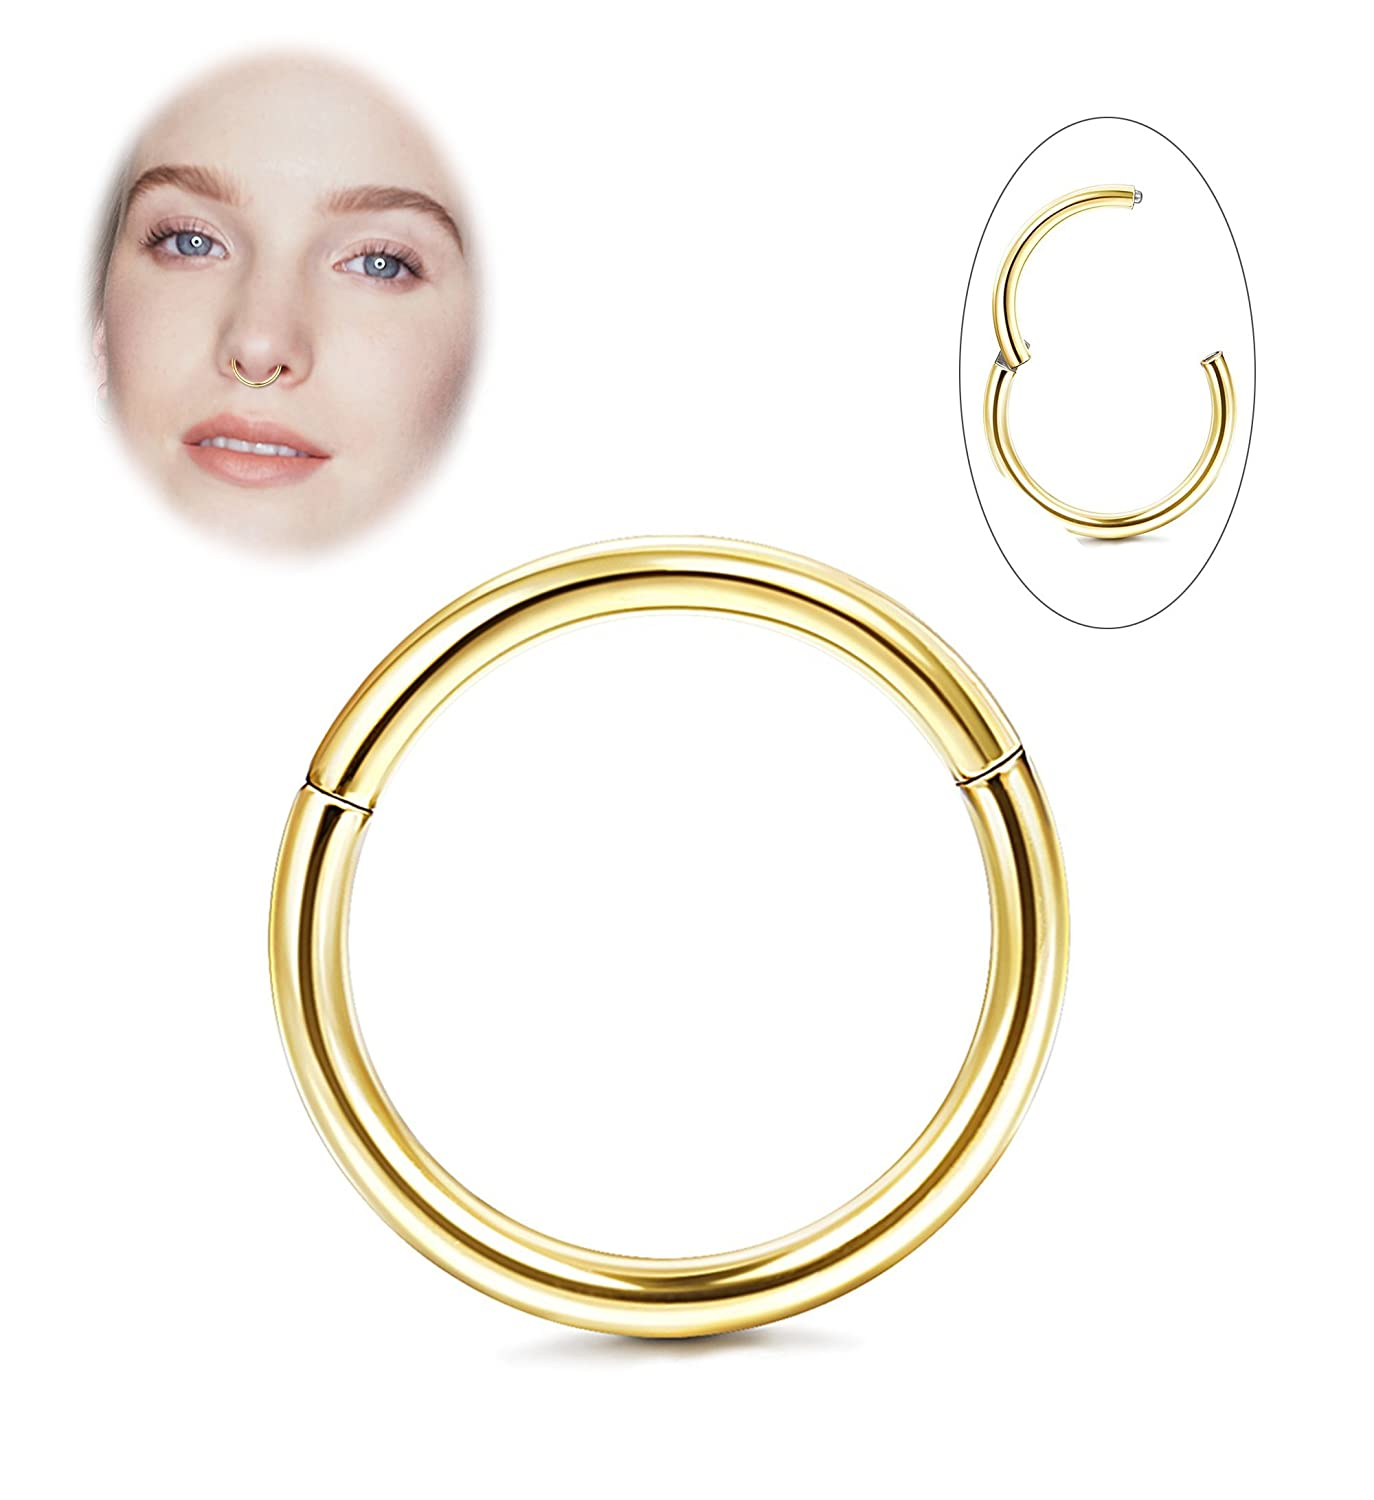 9b7463b0208fd Jstyle 316L Stainless Steel Improved Hinged Clicker Rings 18G Nose ...